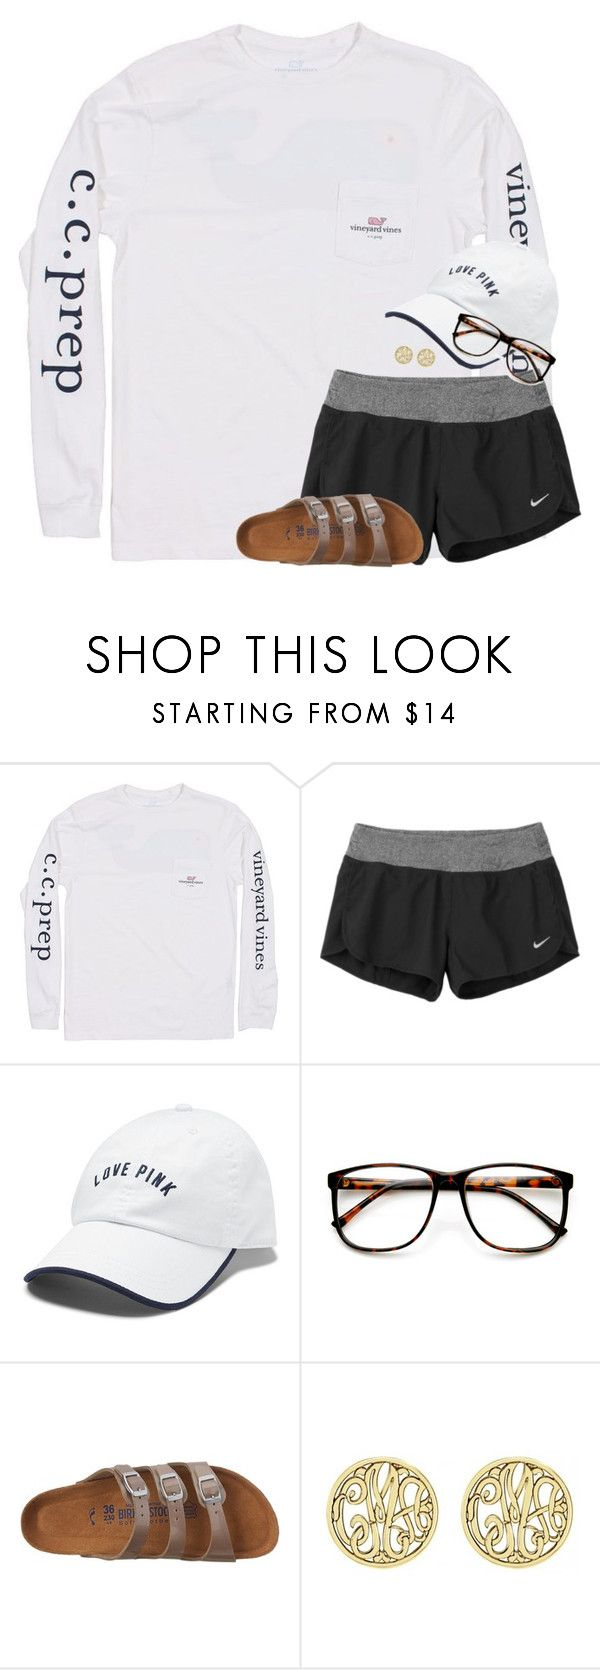 """""""I want to go back to Mexico"""" by amberfmillard-1 ❤ liked on Polyvore featuring Vineyard Vines, NIKE, Victoria's Secret, ZeroUV, Birkenstock and Alison & Ivy"""